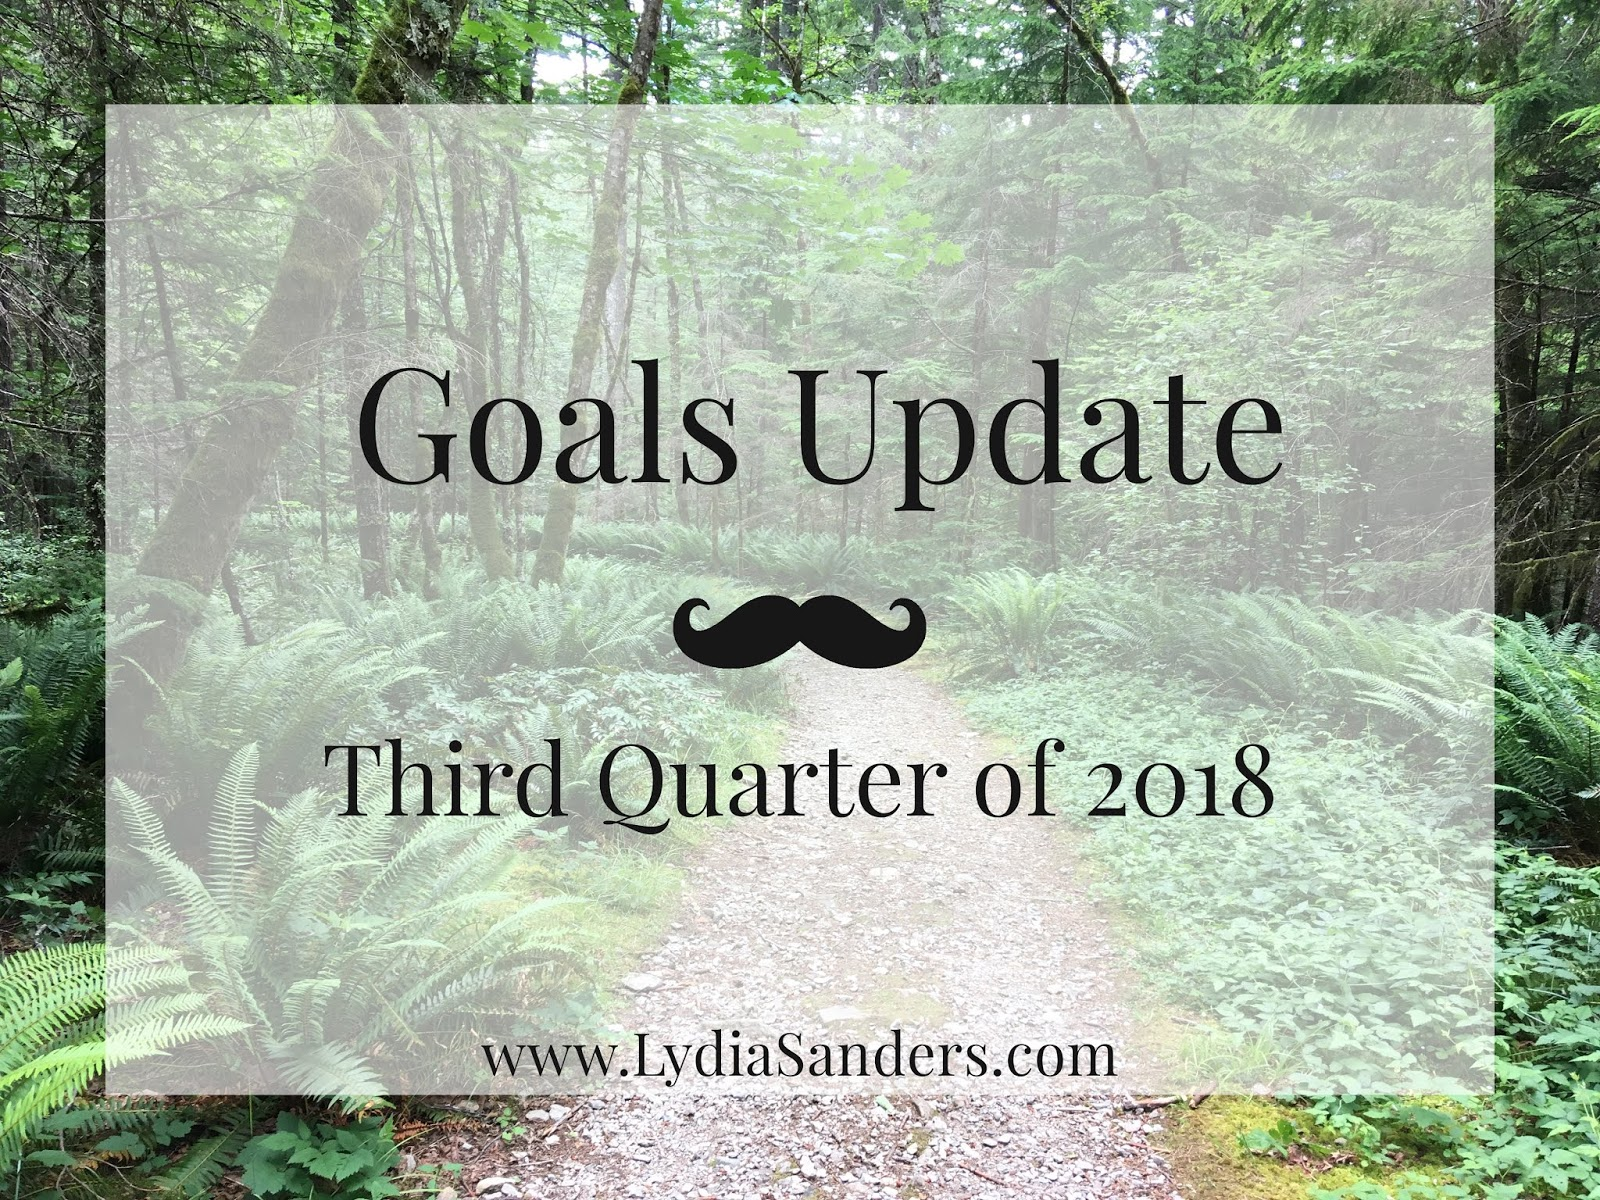 Goals Update - Third Quarter of 2018 | Lydia Sanders